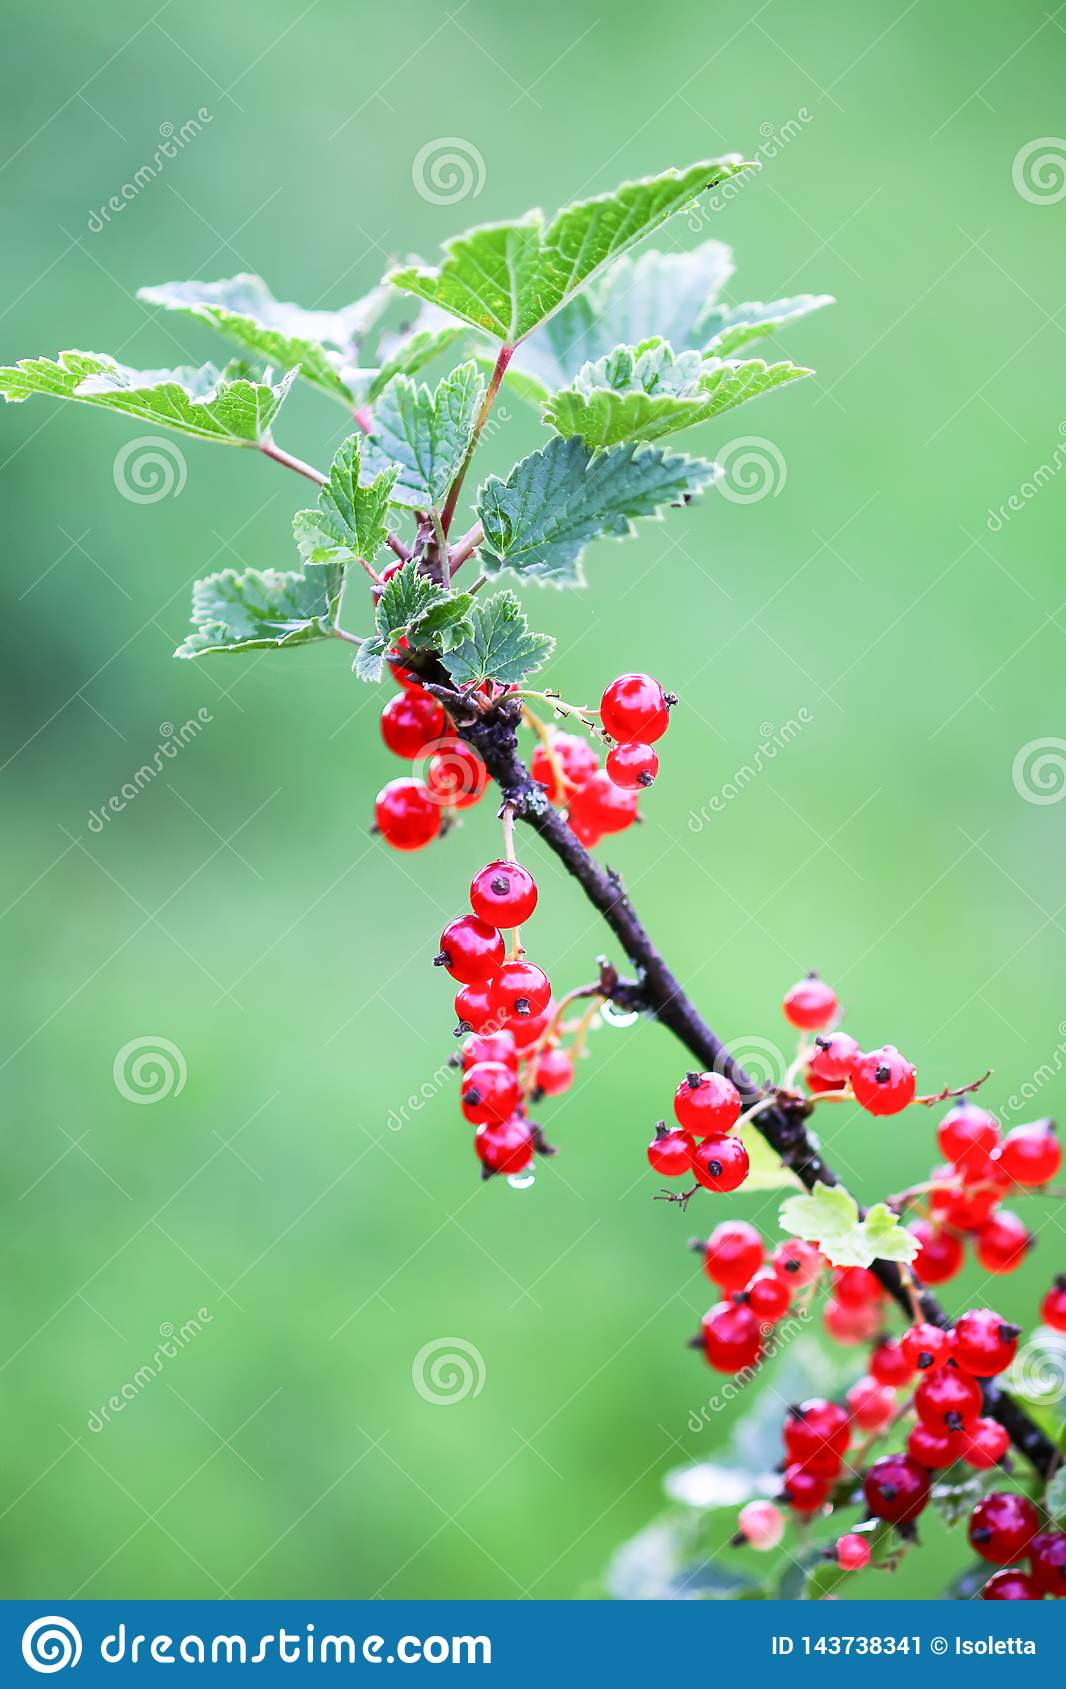 Ripe red currant in a summer garden. Ribes rubrum plant with ripe red berries.